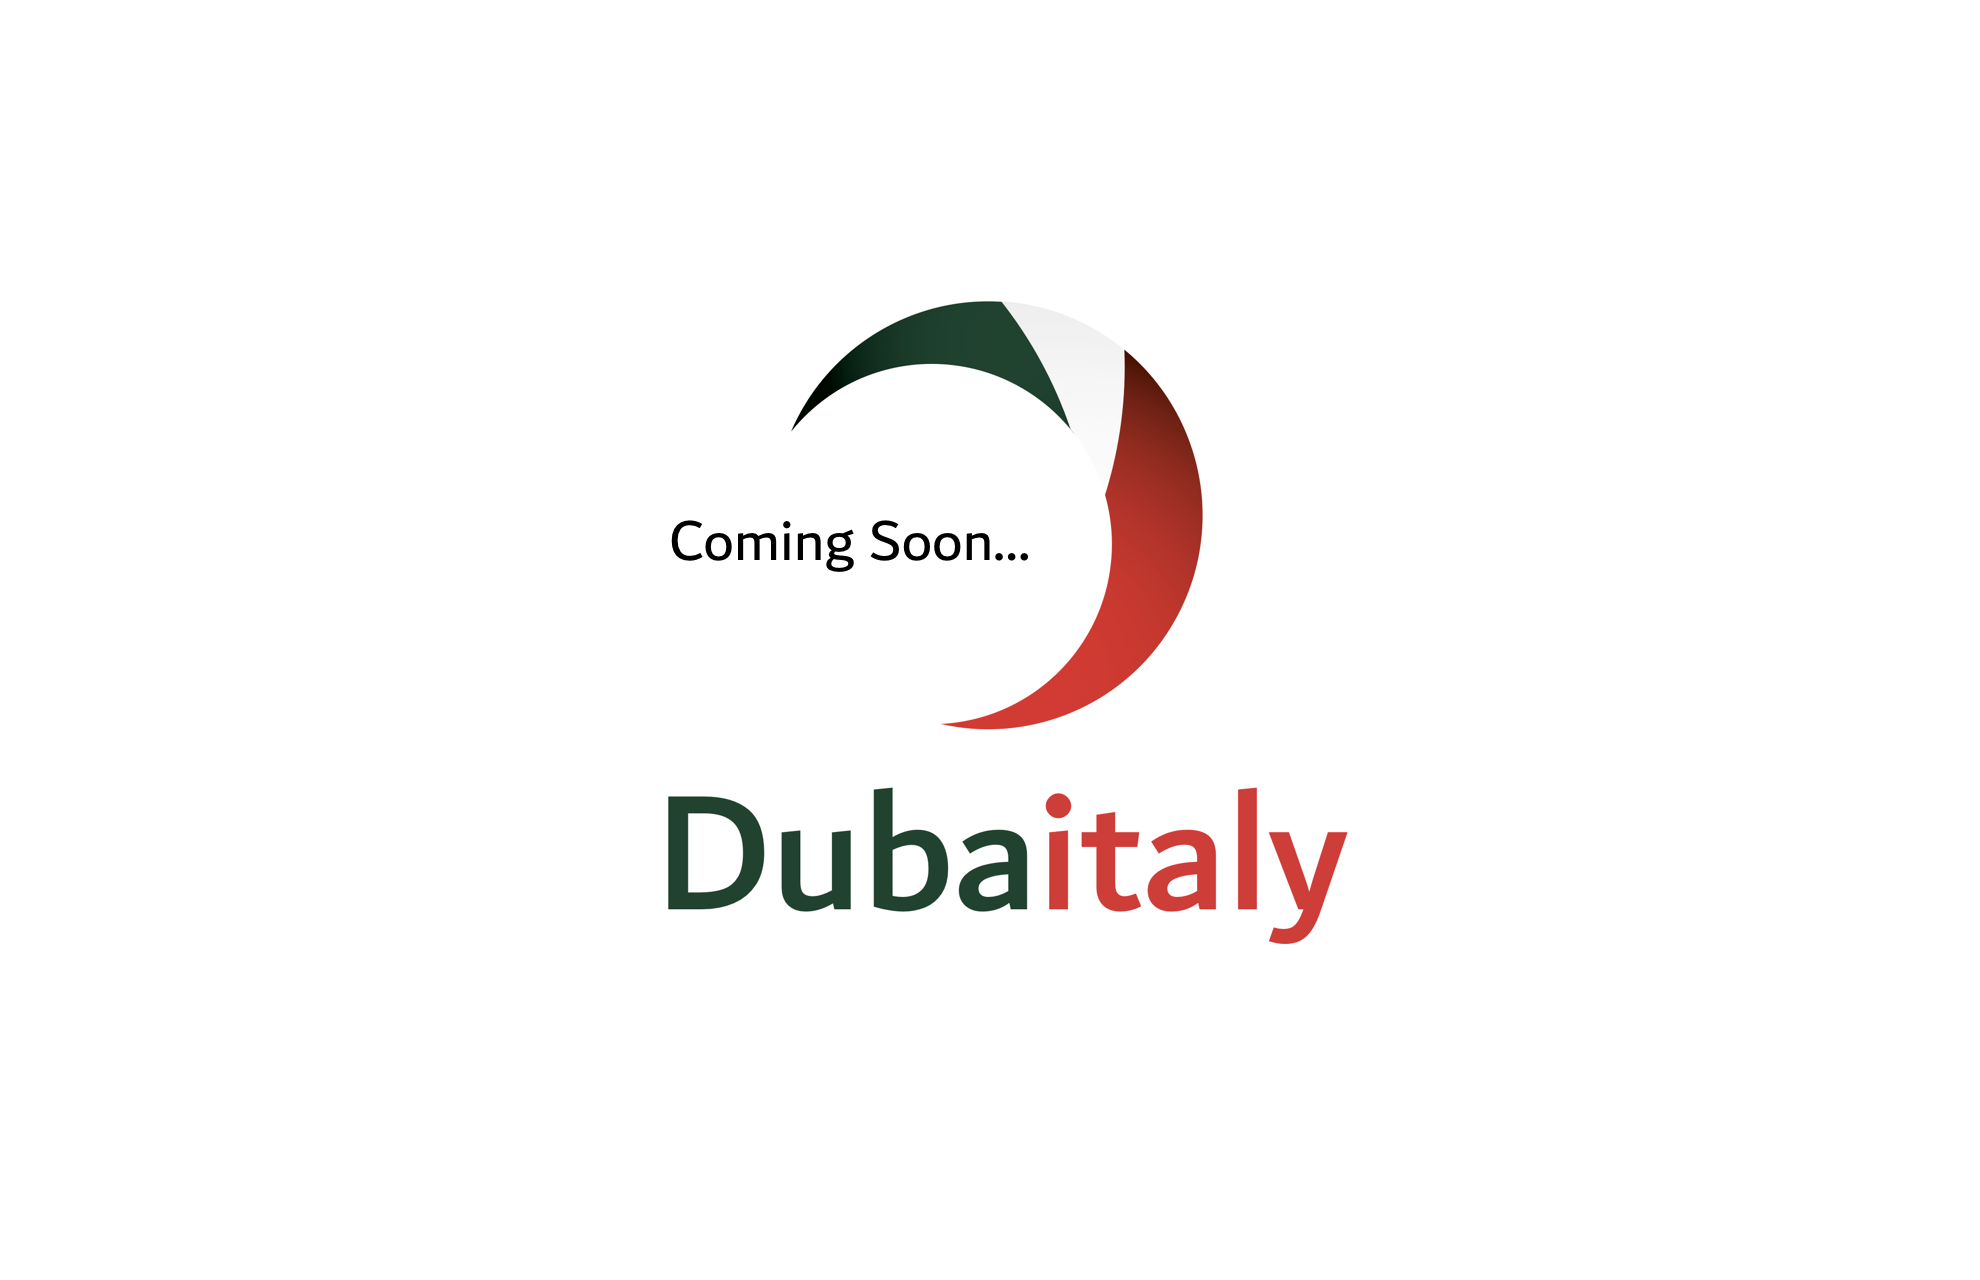 Dubaitaly-Coming-Soon